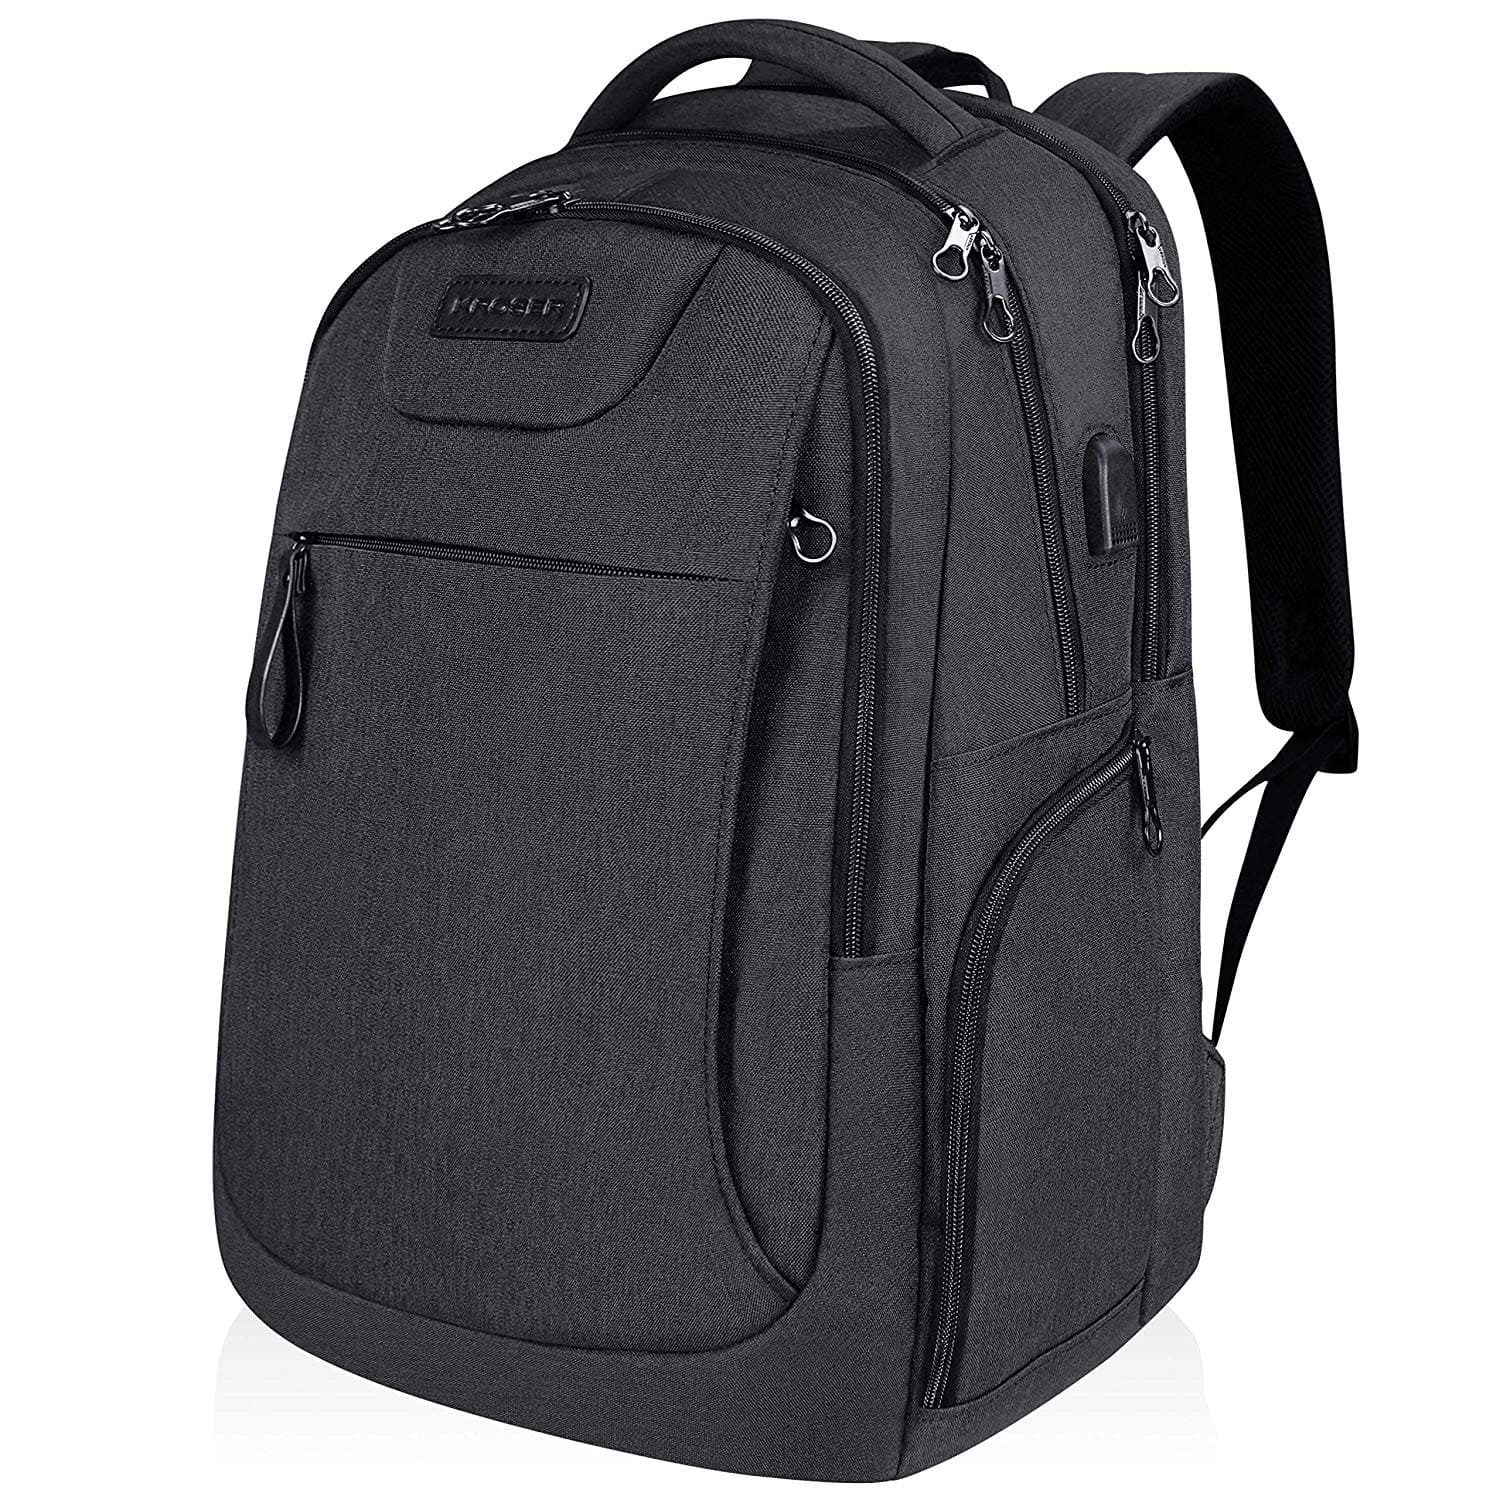 Laptop Backpack for 15.6-17.3 Inch Laptop Anti-Theft Large Computer Backpack with USB Charging Port Water-Repellent Casual Daypack $22.39 AC